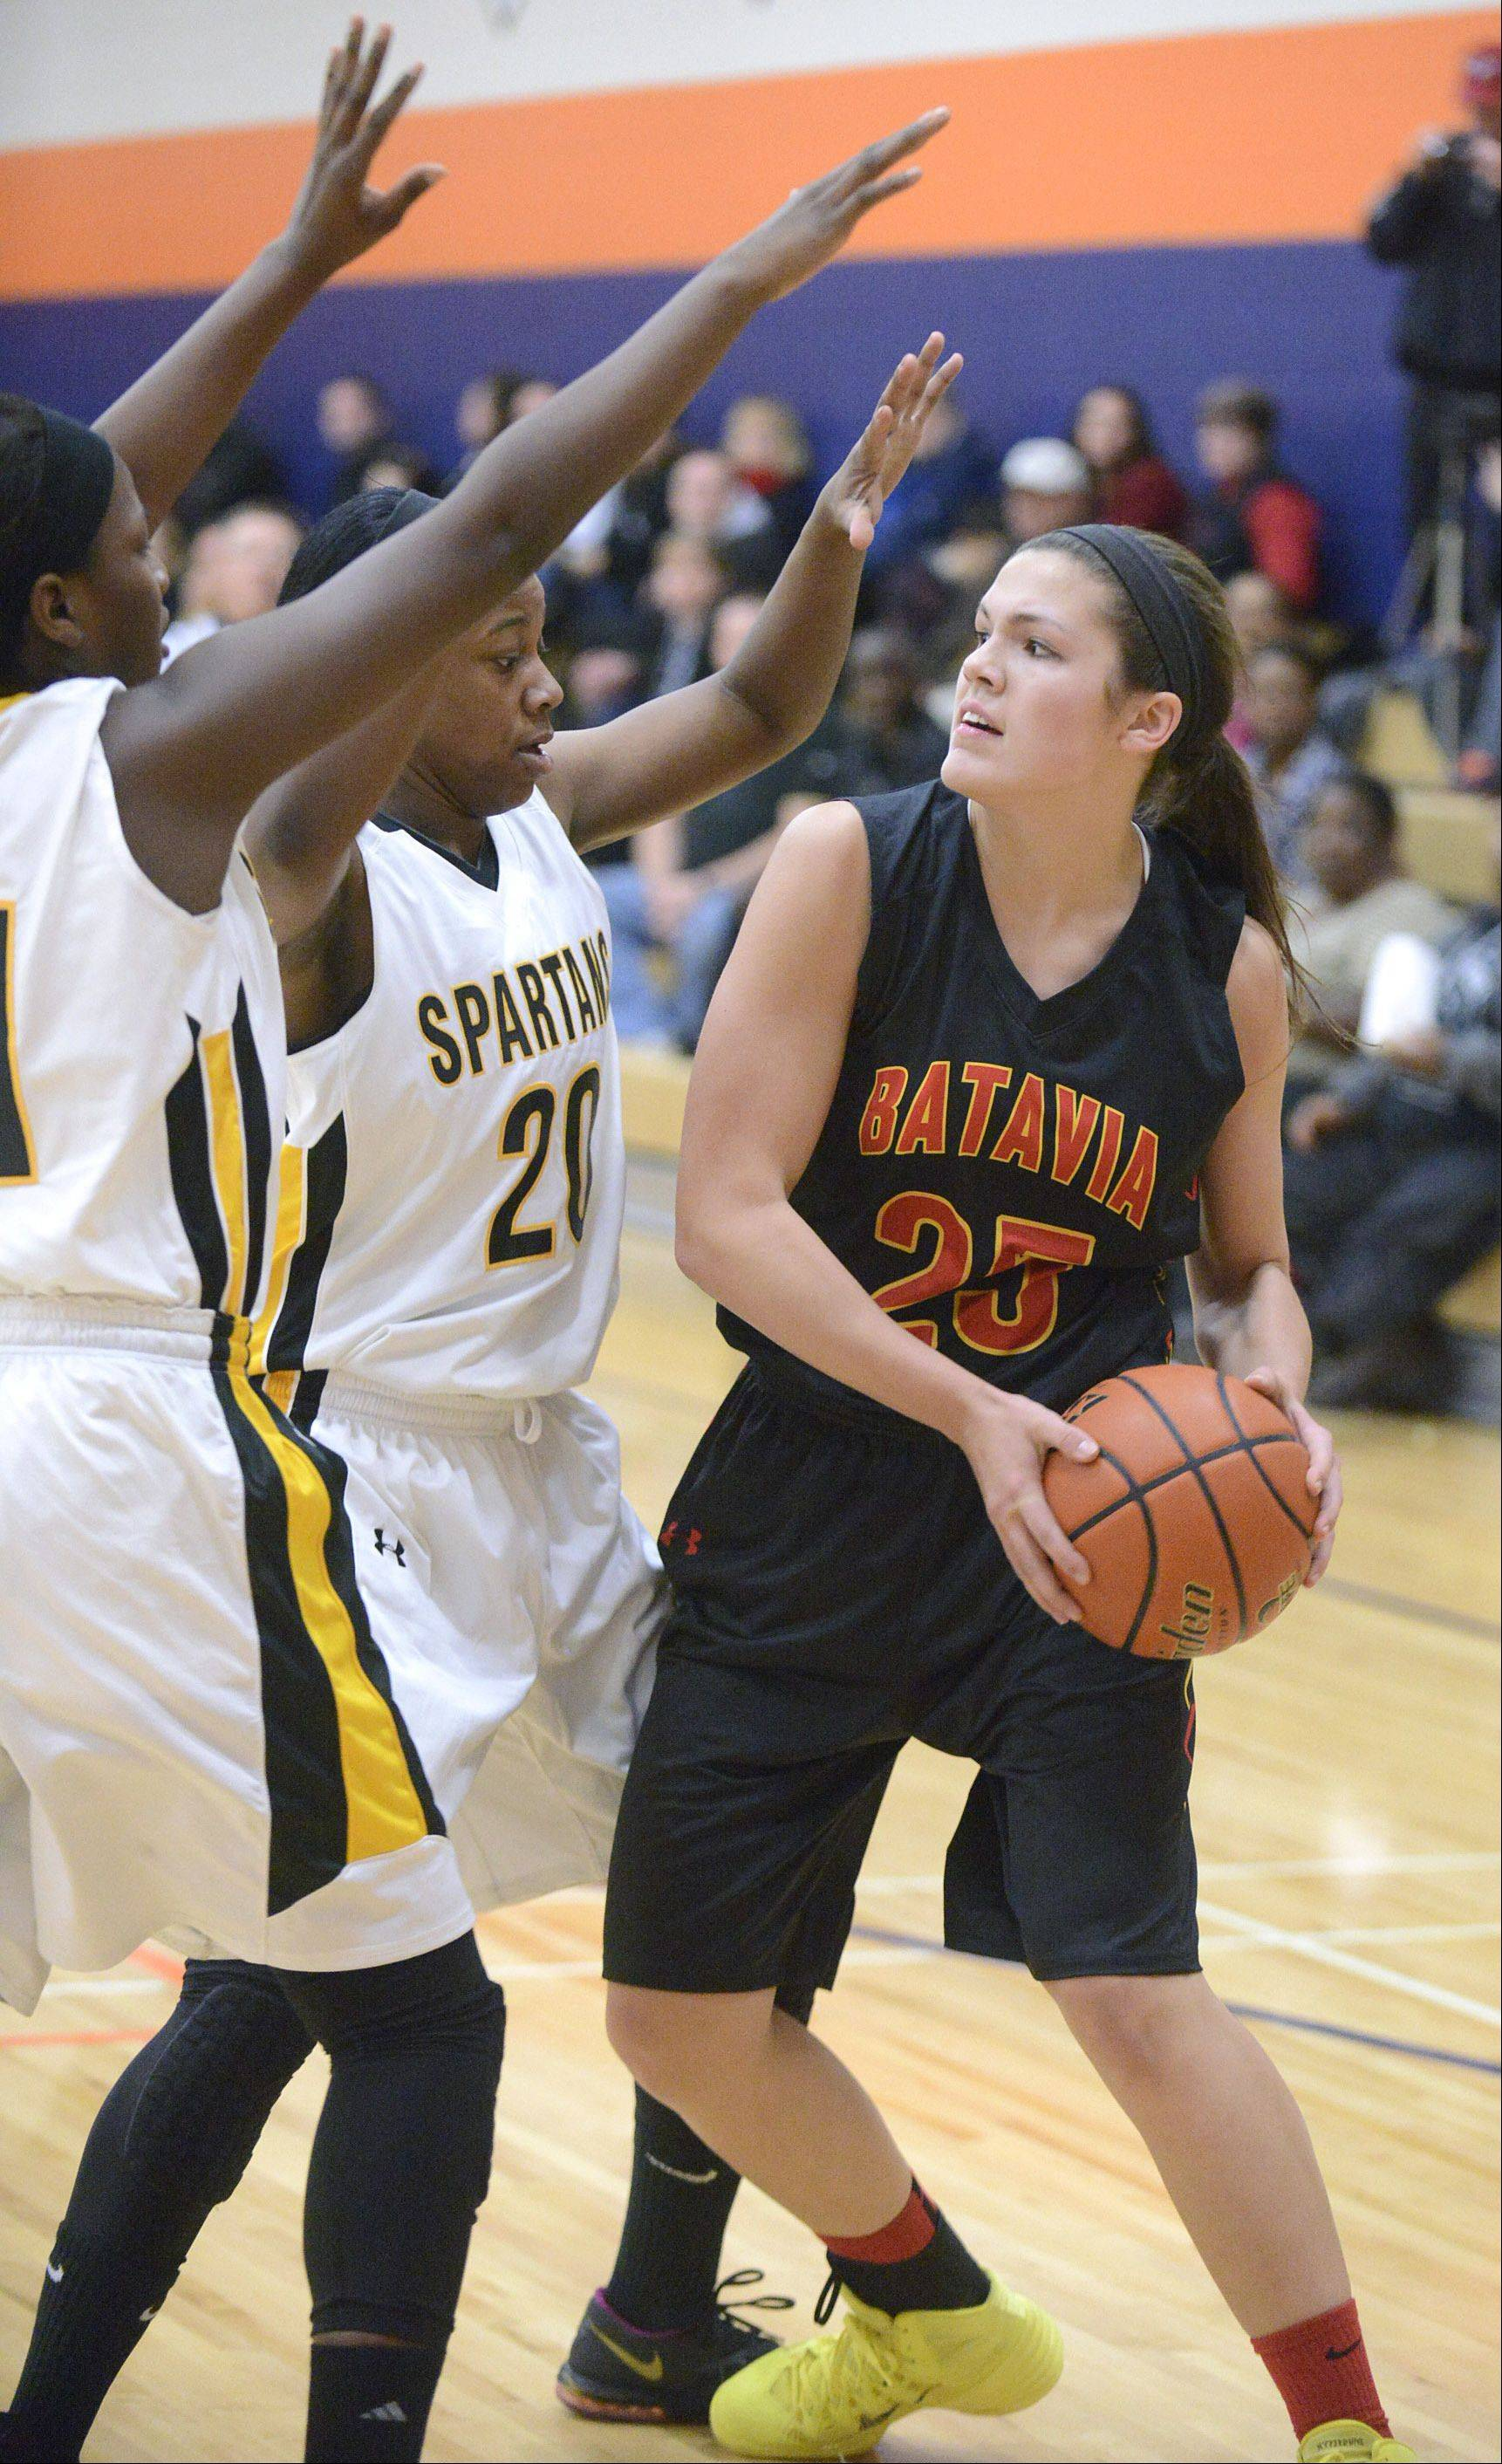 Batavia's Hannah Frazier attempts to pass around Marian Catholic's Ashton Millender and Dajhae Mullins in the first quarter on Wednesday, December 18.